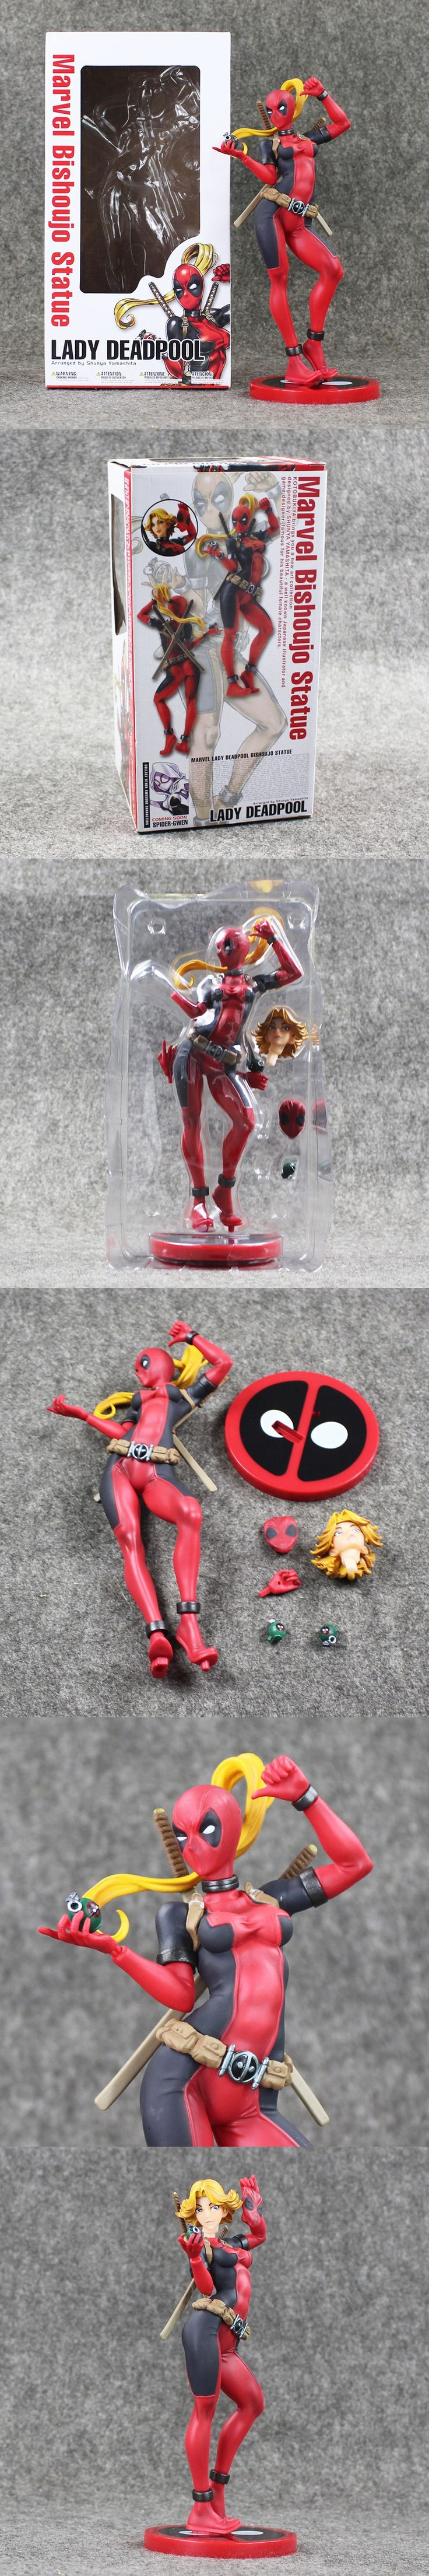 24cmCartoon Lady Deadpool Wanda Wilson from Earth-3010 Bishoujo Statue PVC Action Figure Collection Model Kids Toy Doll